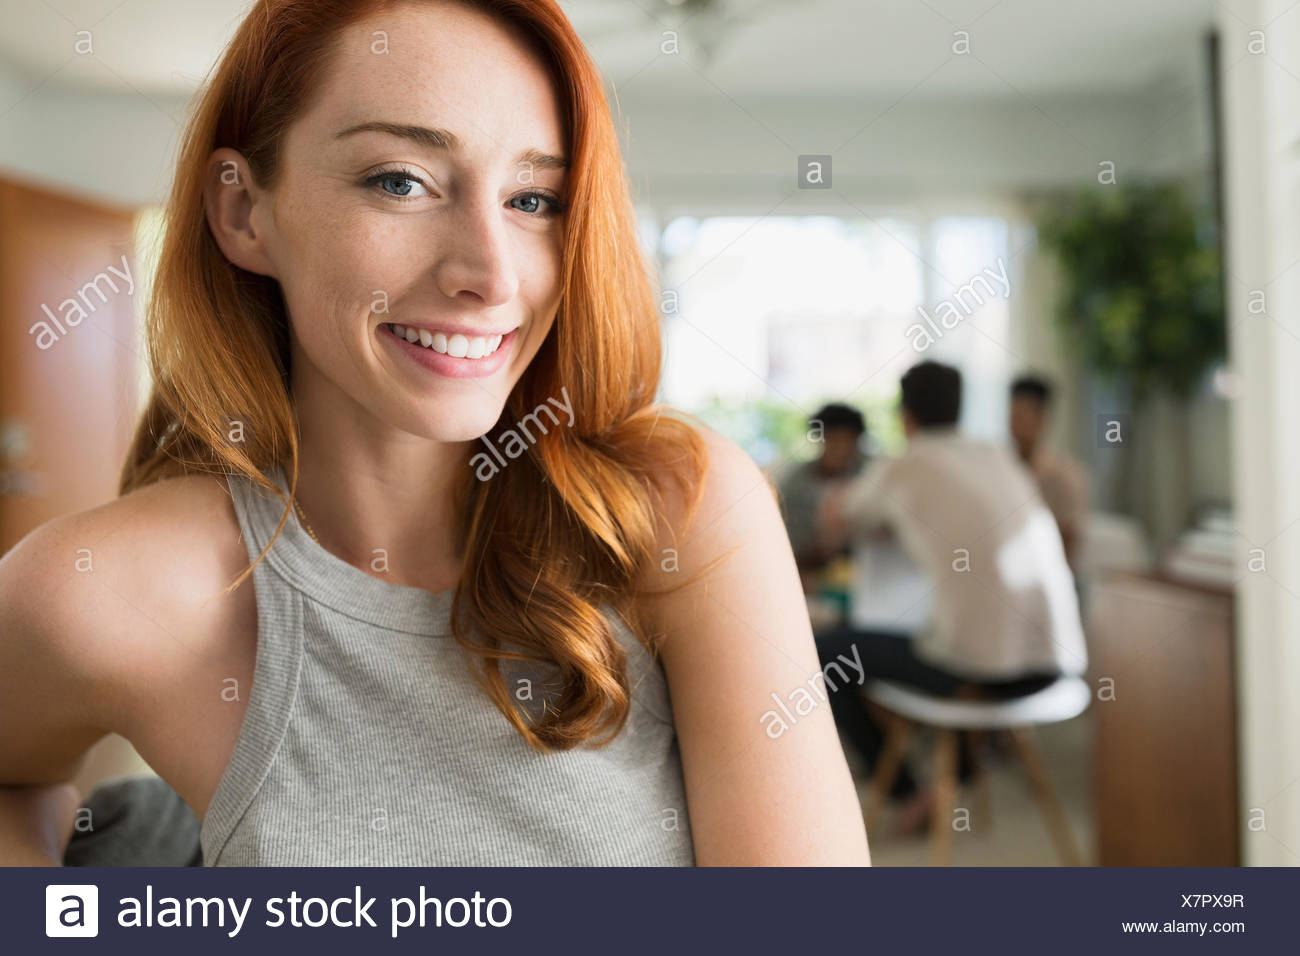 Portrait smiling woman with red hair - Stock Image